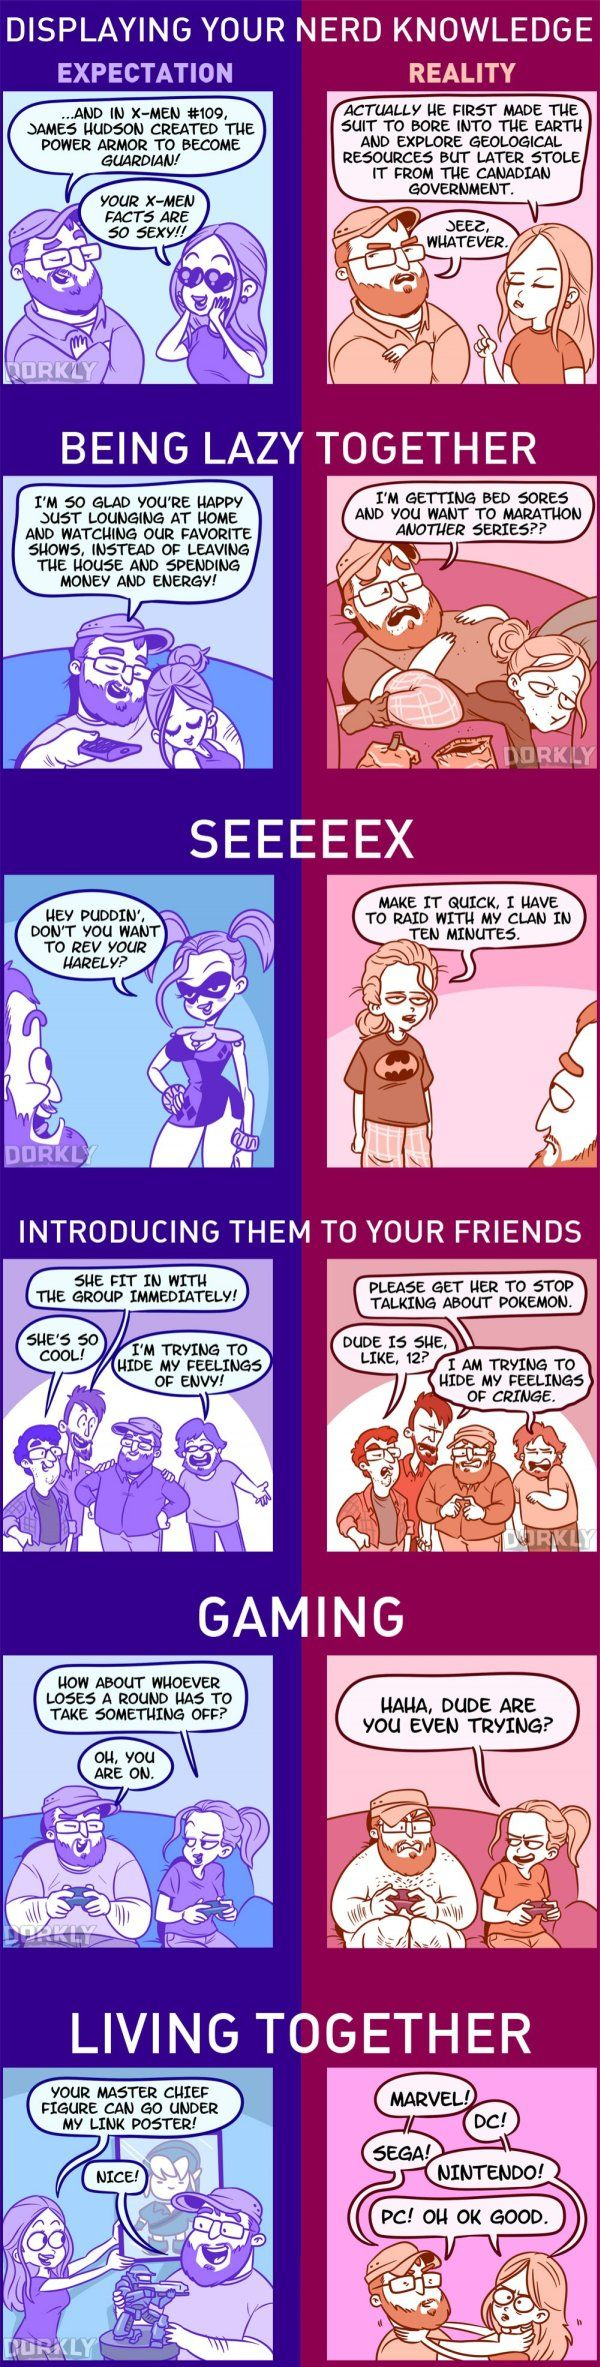 Dorkly Comic: Dating Someone as Nerdy as You: Expectations vs Reality